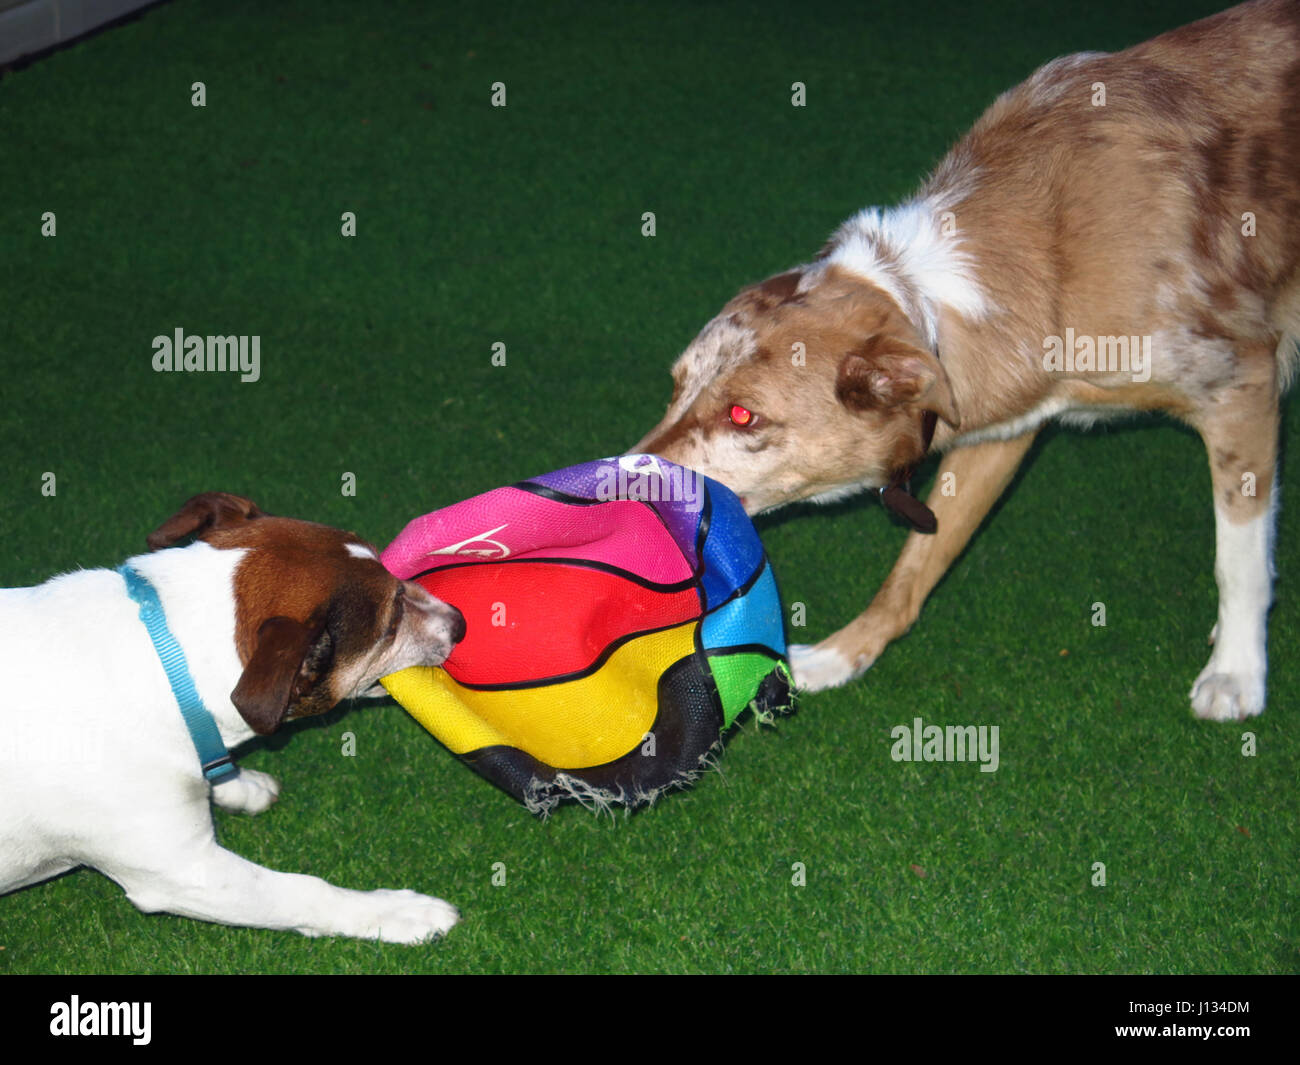 Jack Russell and red Collie playing with ball - Stock Image